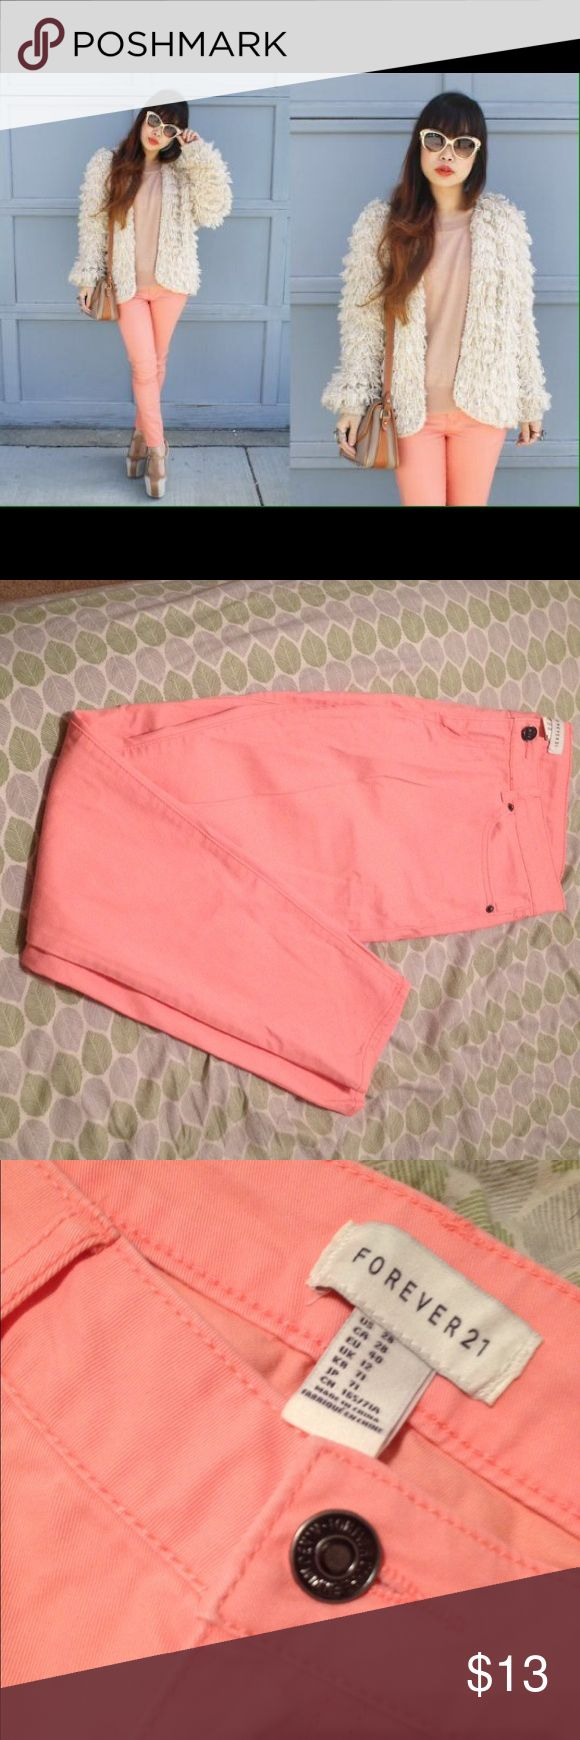 Forever 21 Peach Pants Hardly worn and in good condition, light peach pants! Feminine and great pop of color with any outfit! Forever 21 Pants